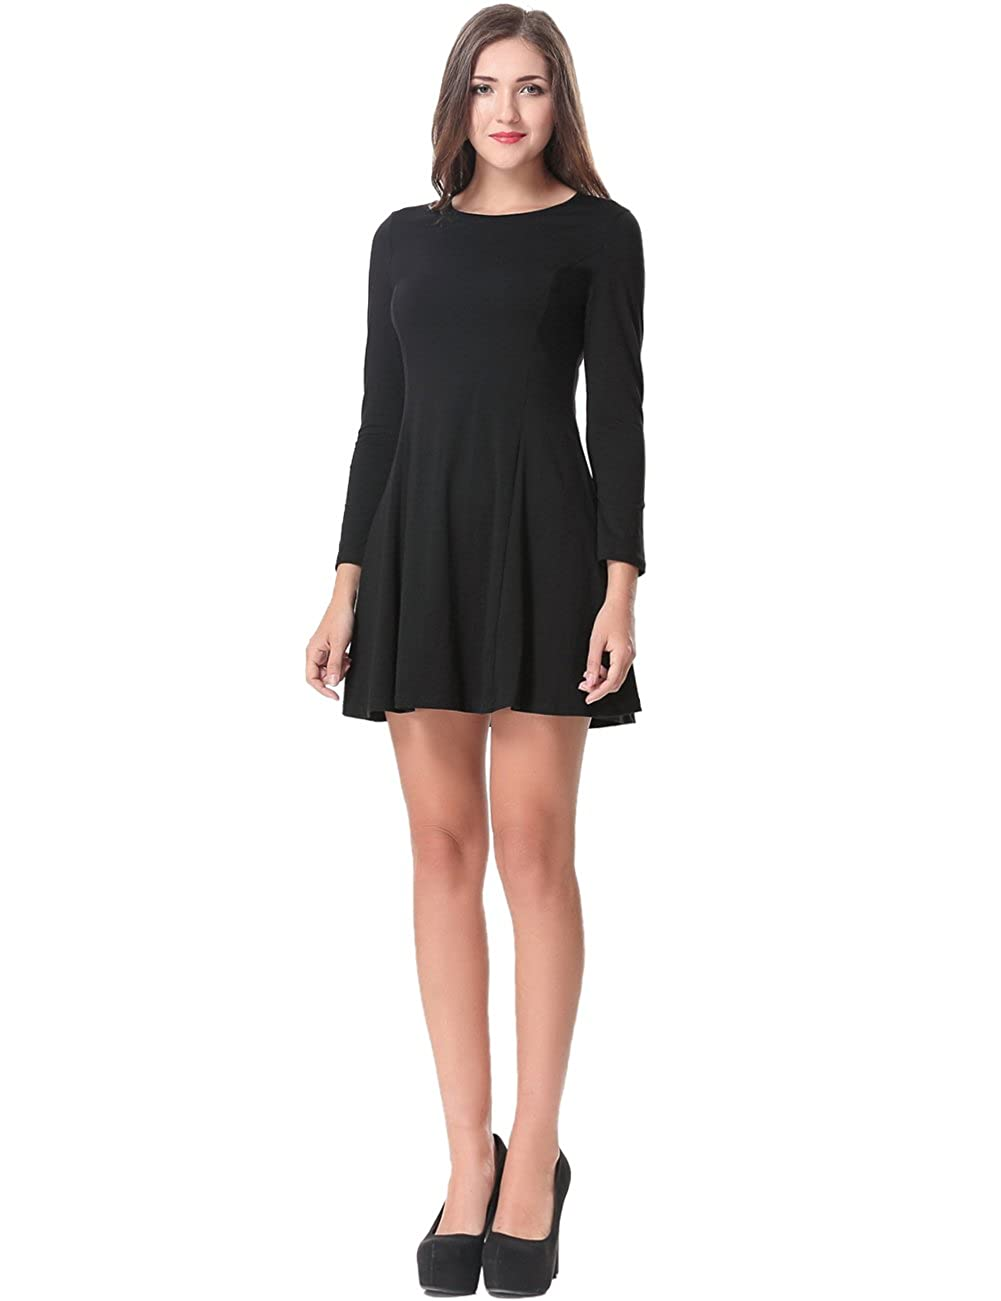 To acquire High feminine neck dresses love list pictures trends